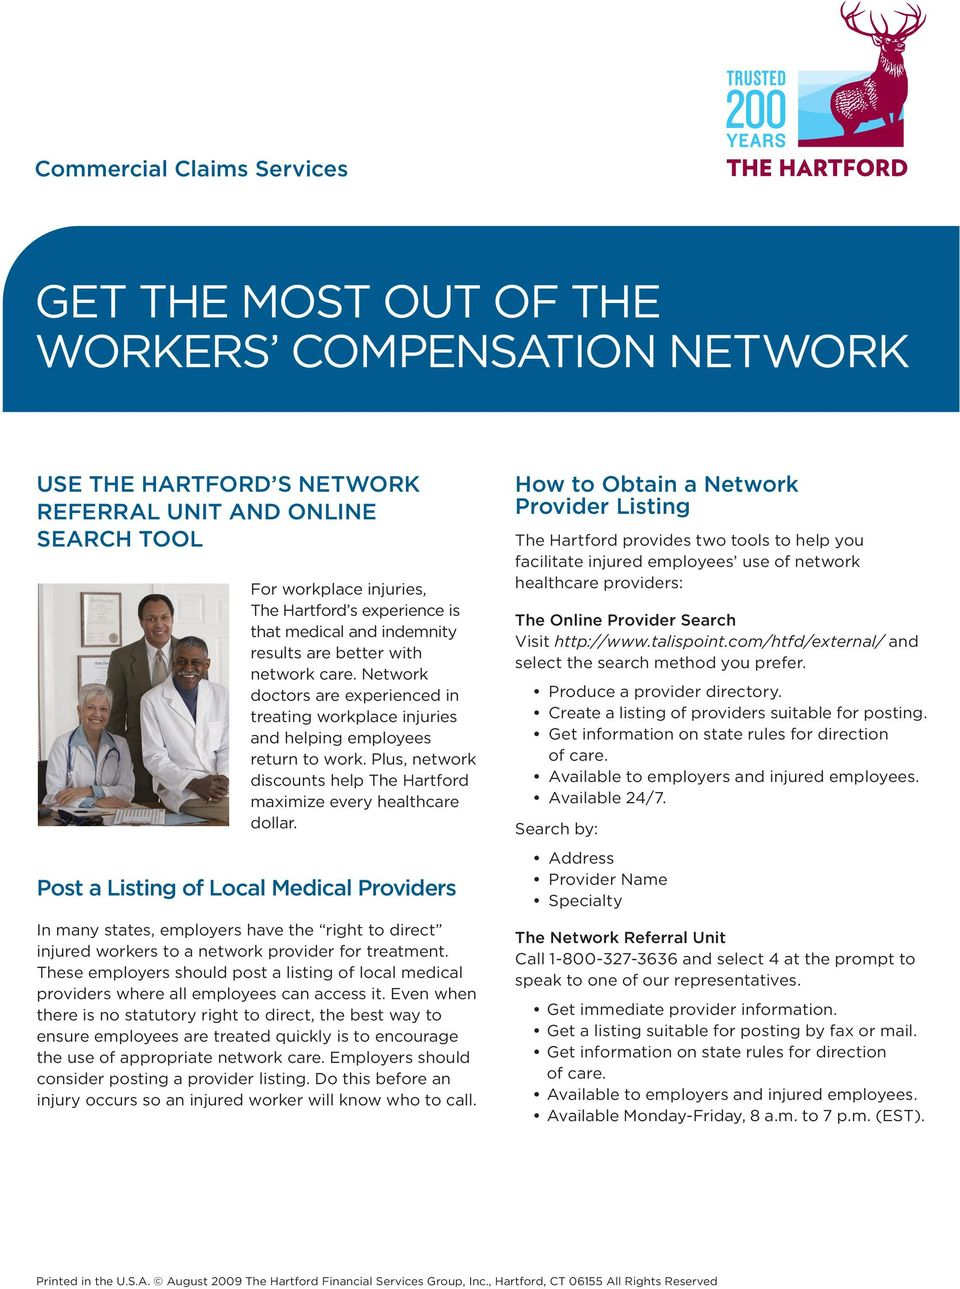 Network doctors are experienced in treating workplace injuries and helping employees return to work. Plus, network discounts help The Hartford maximize every healthcare dollar.